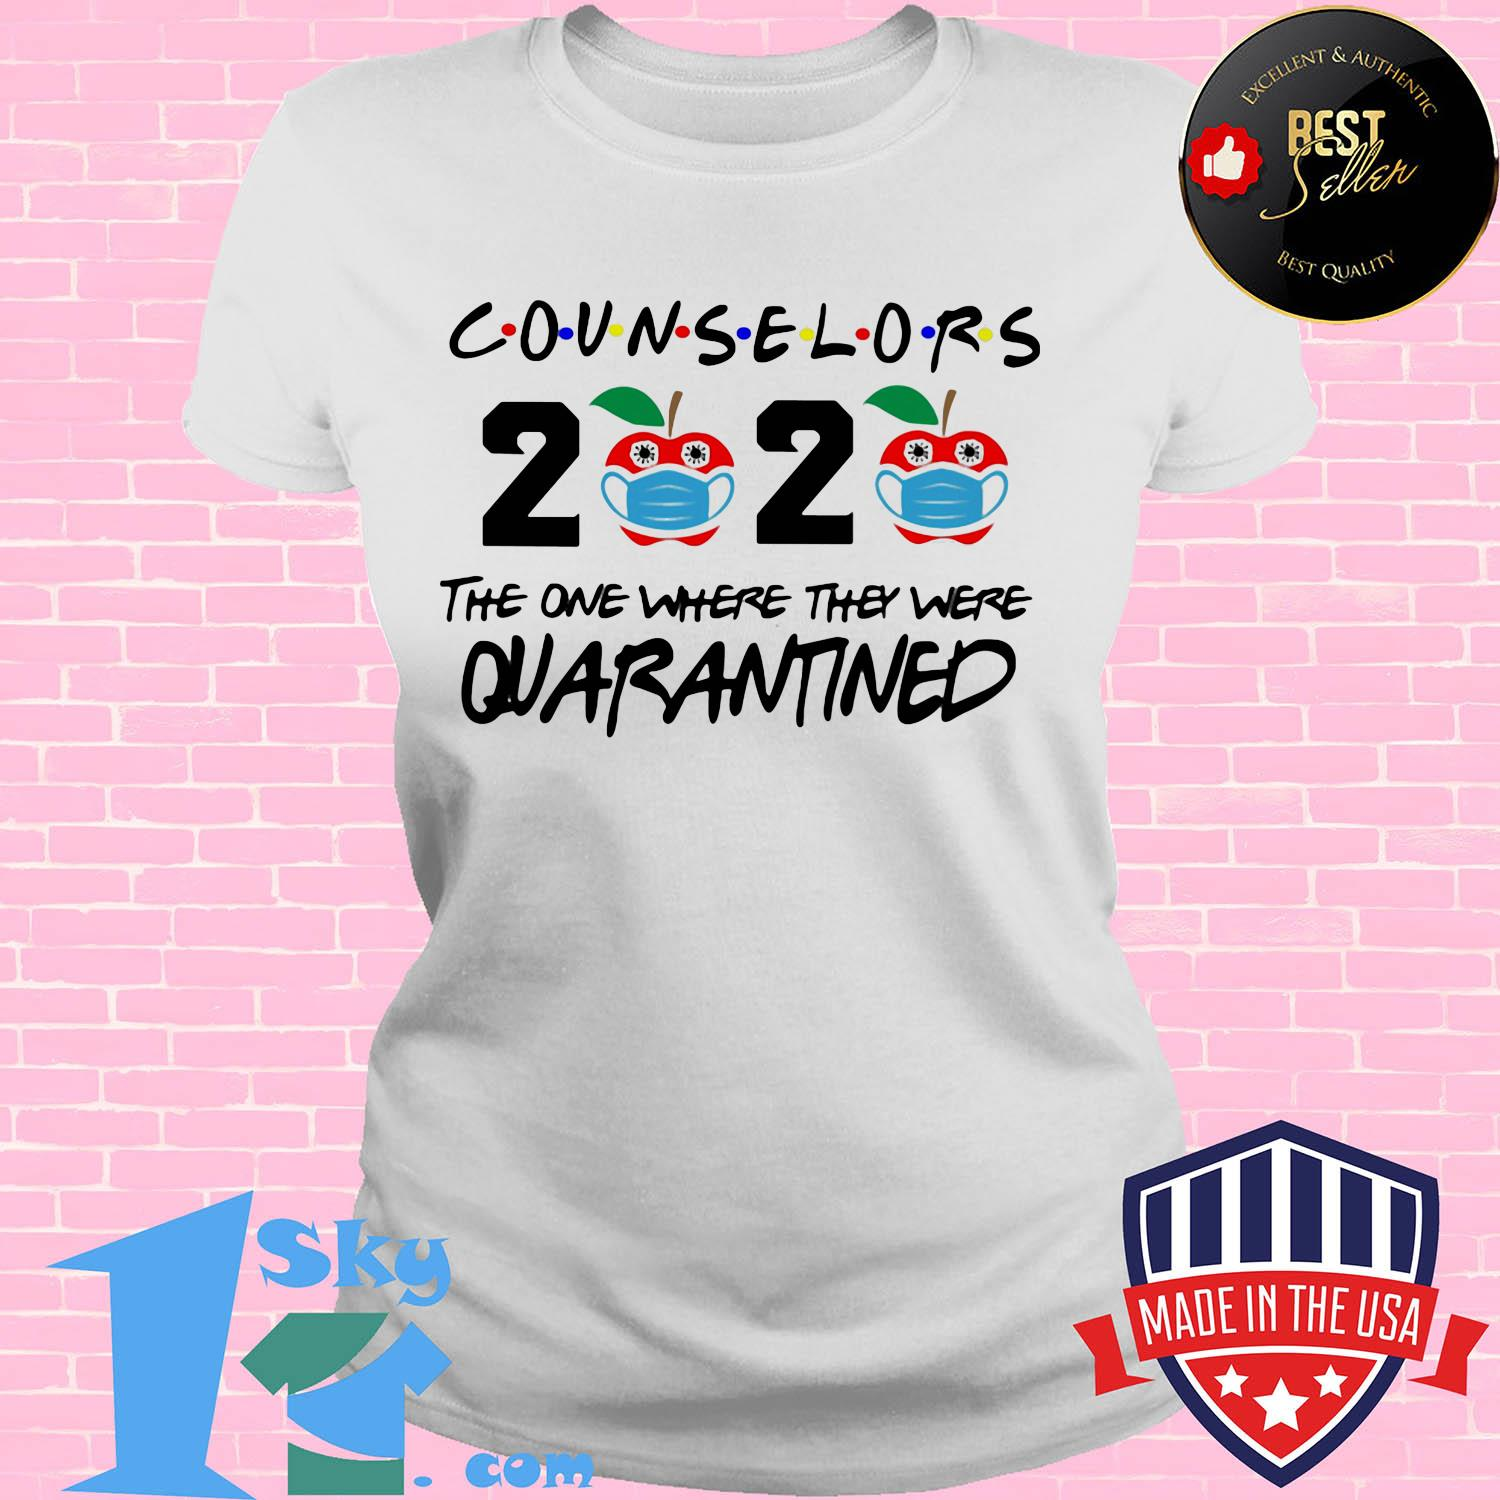 Counselors 2020 the one where they were quarantined apple mask covid-19 shirt